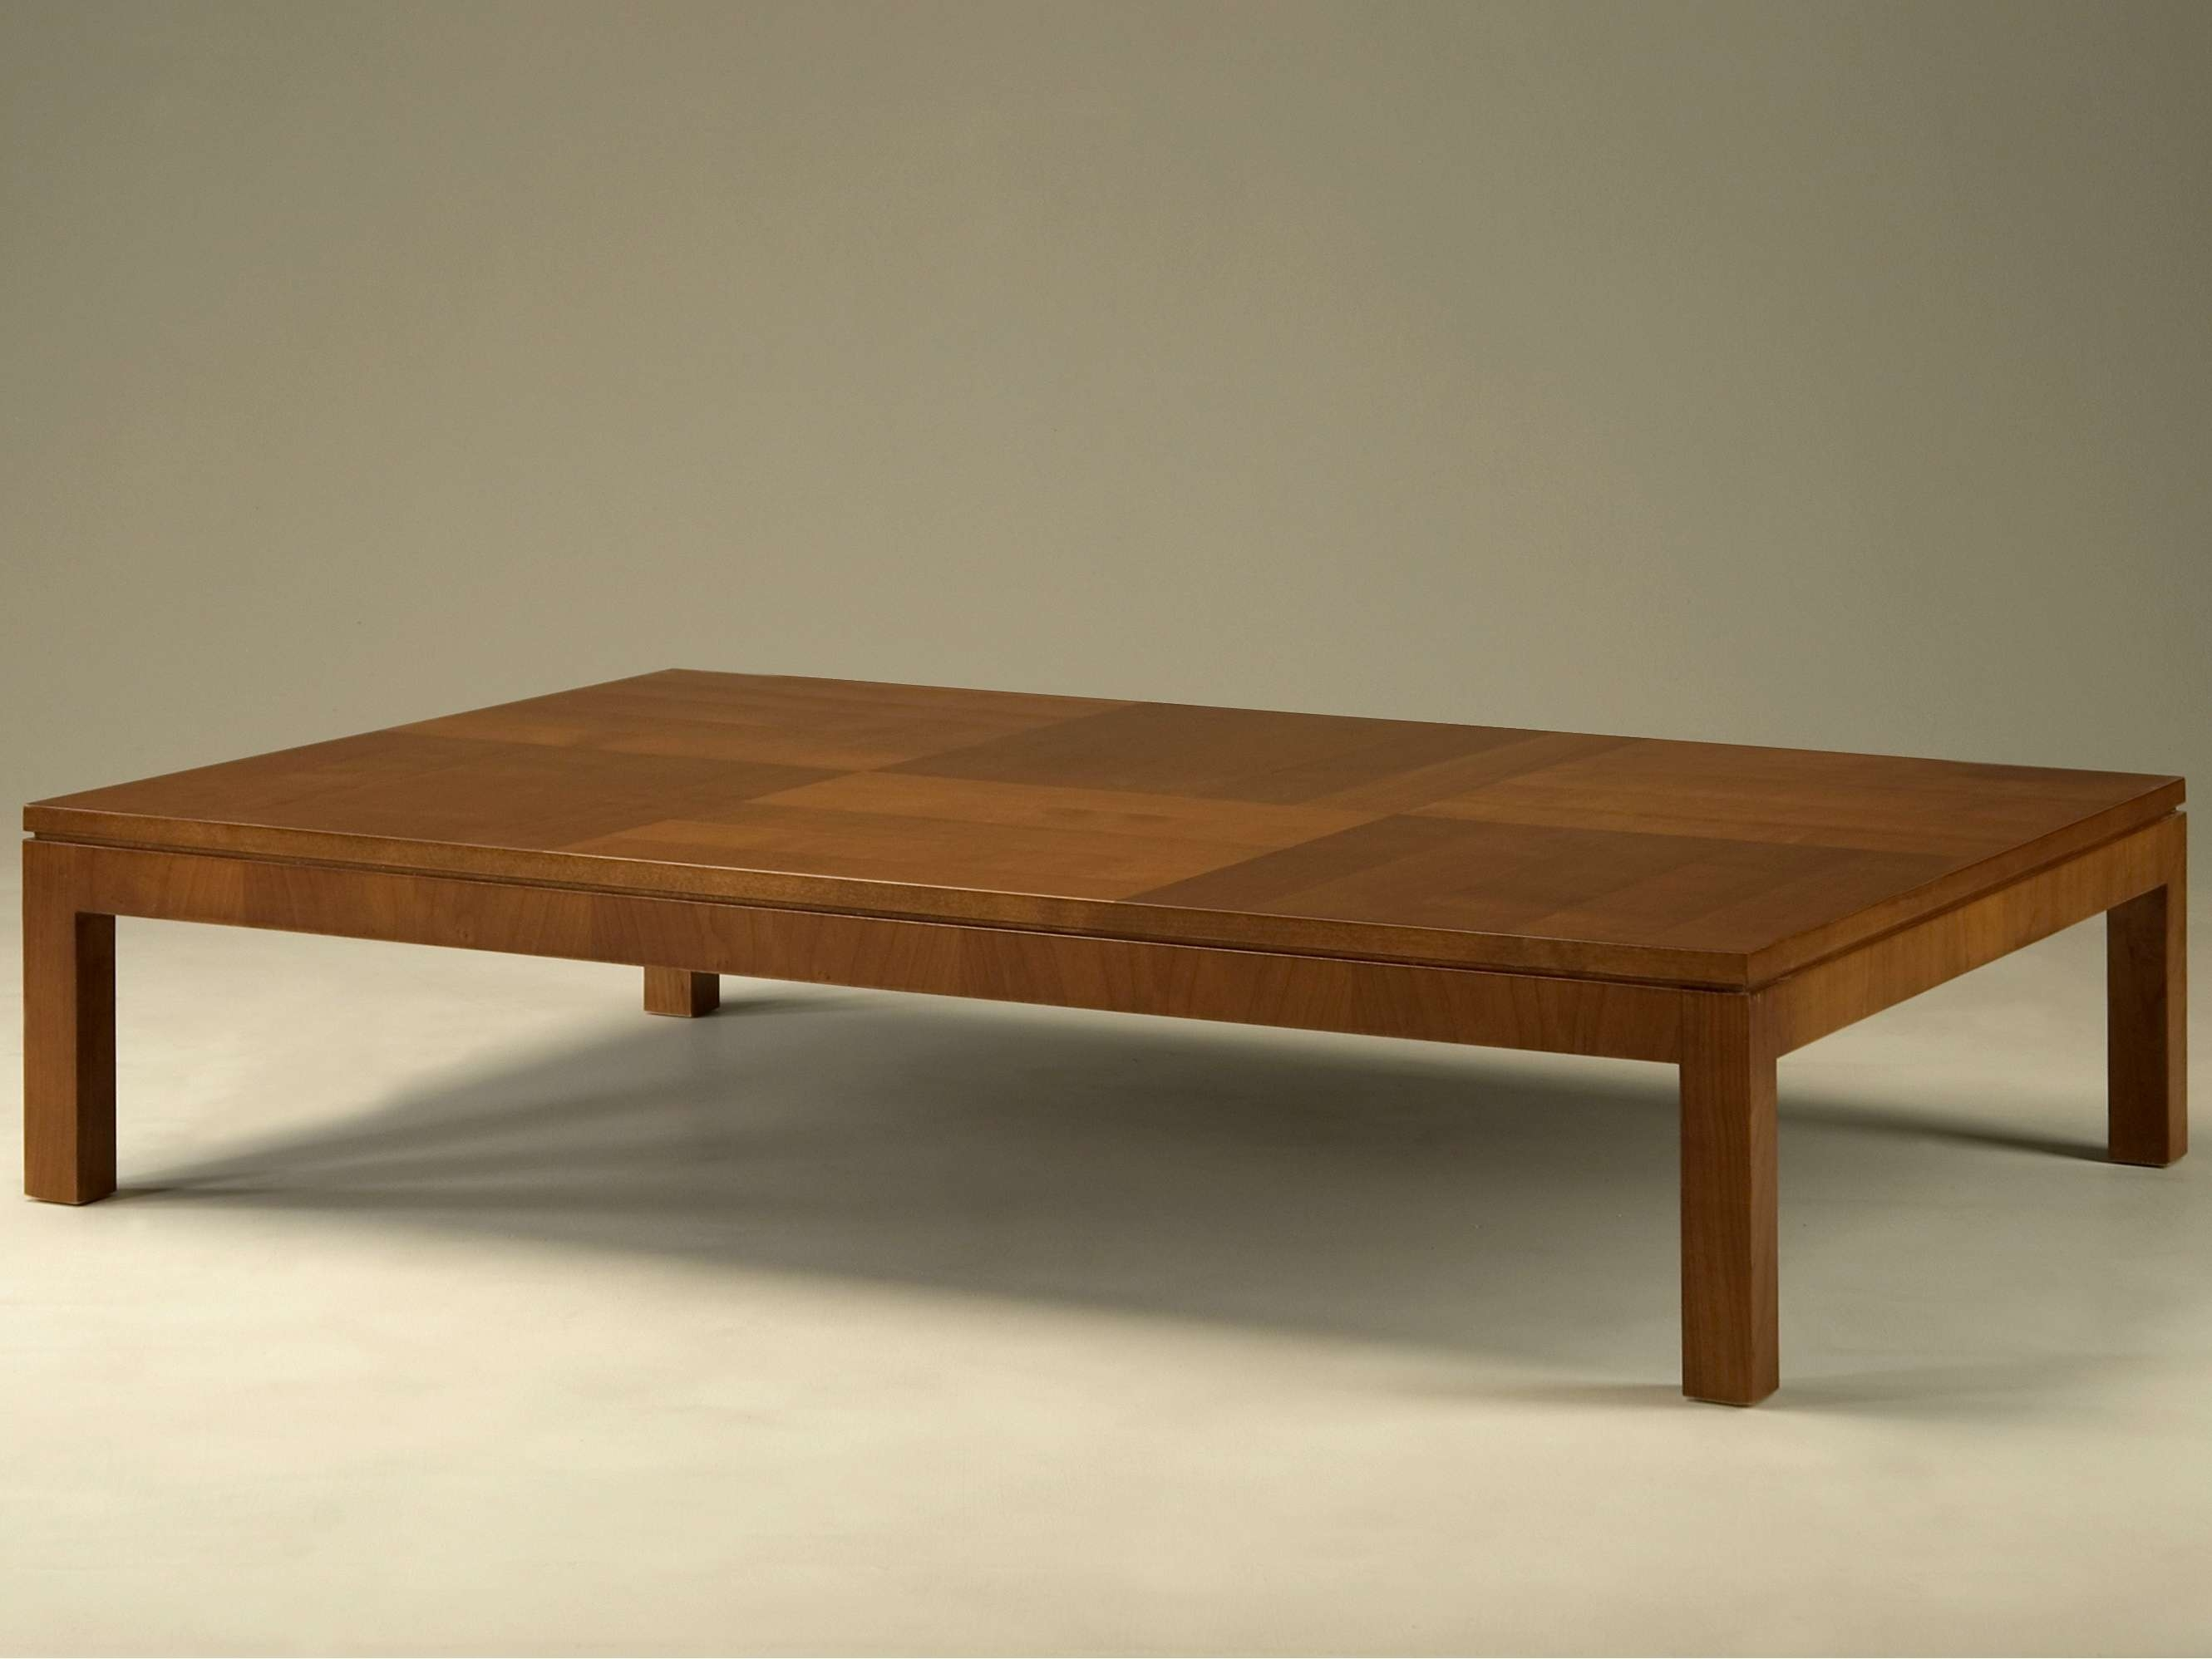 Coffee Tables : Rustic Coffee Table Sets Square End Plans Live With Widely Used Low Coffee Tables With Storage (View 7 of 20)